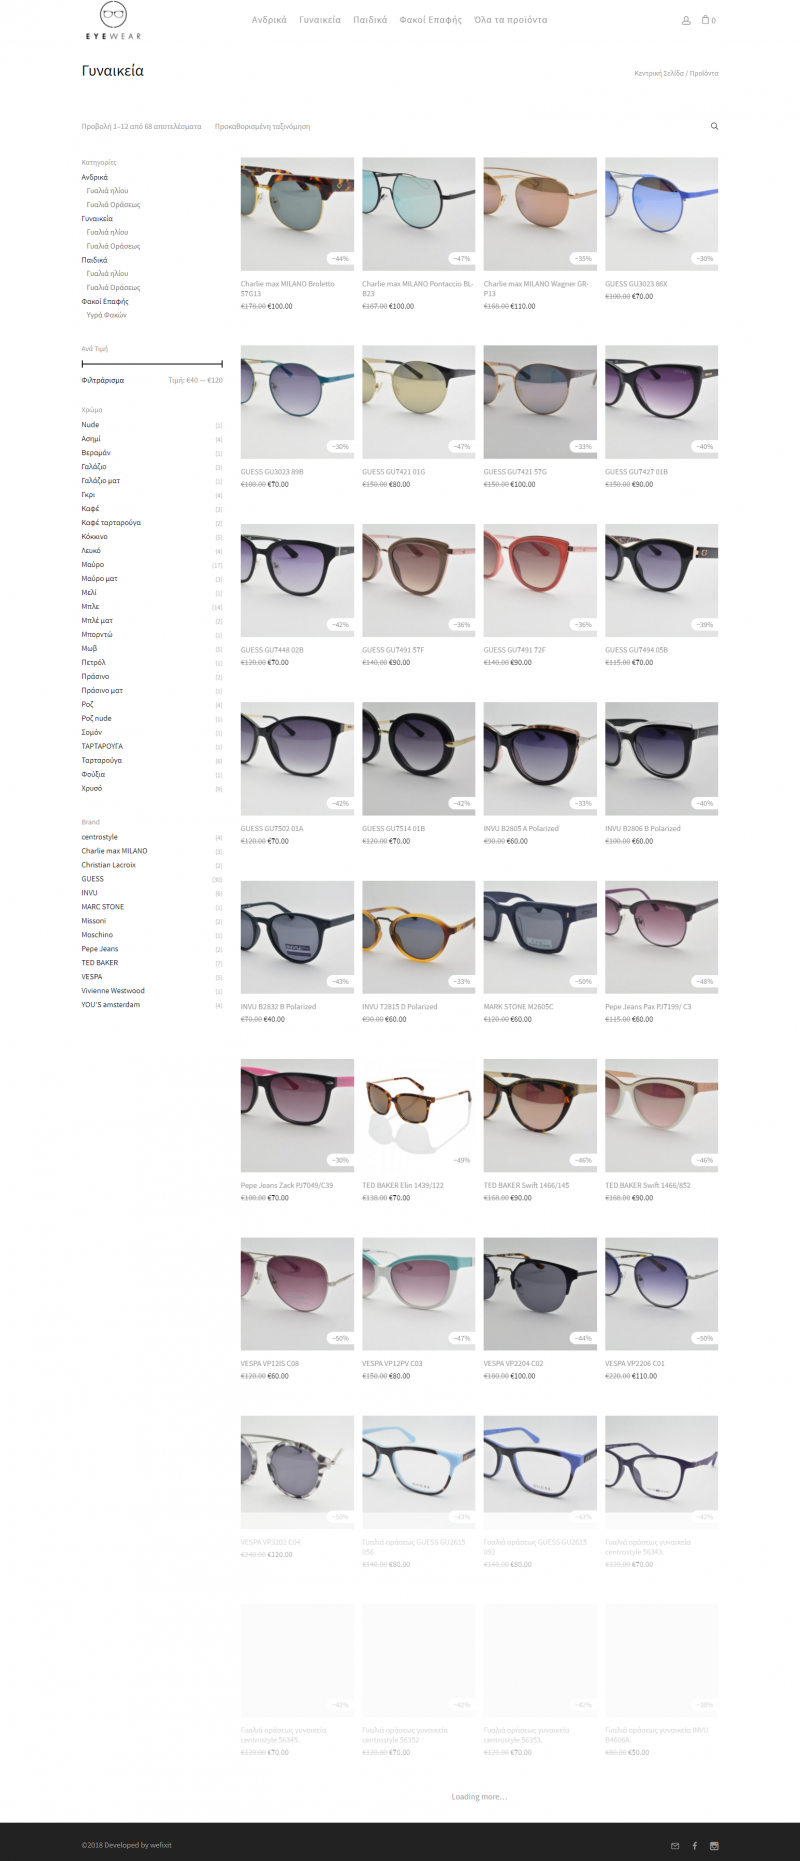 Eye Wear Product list screenshot